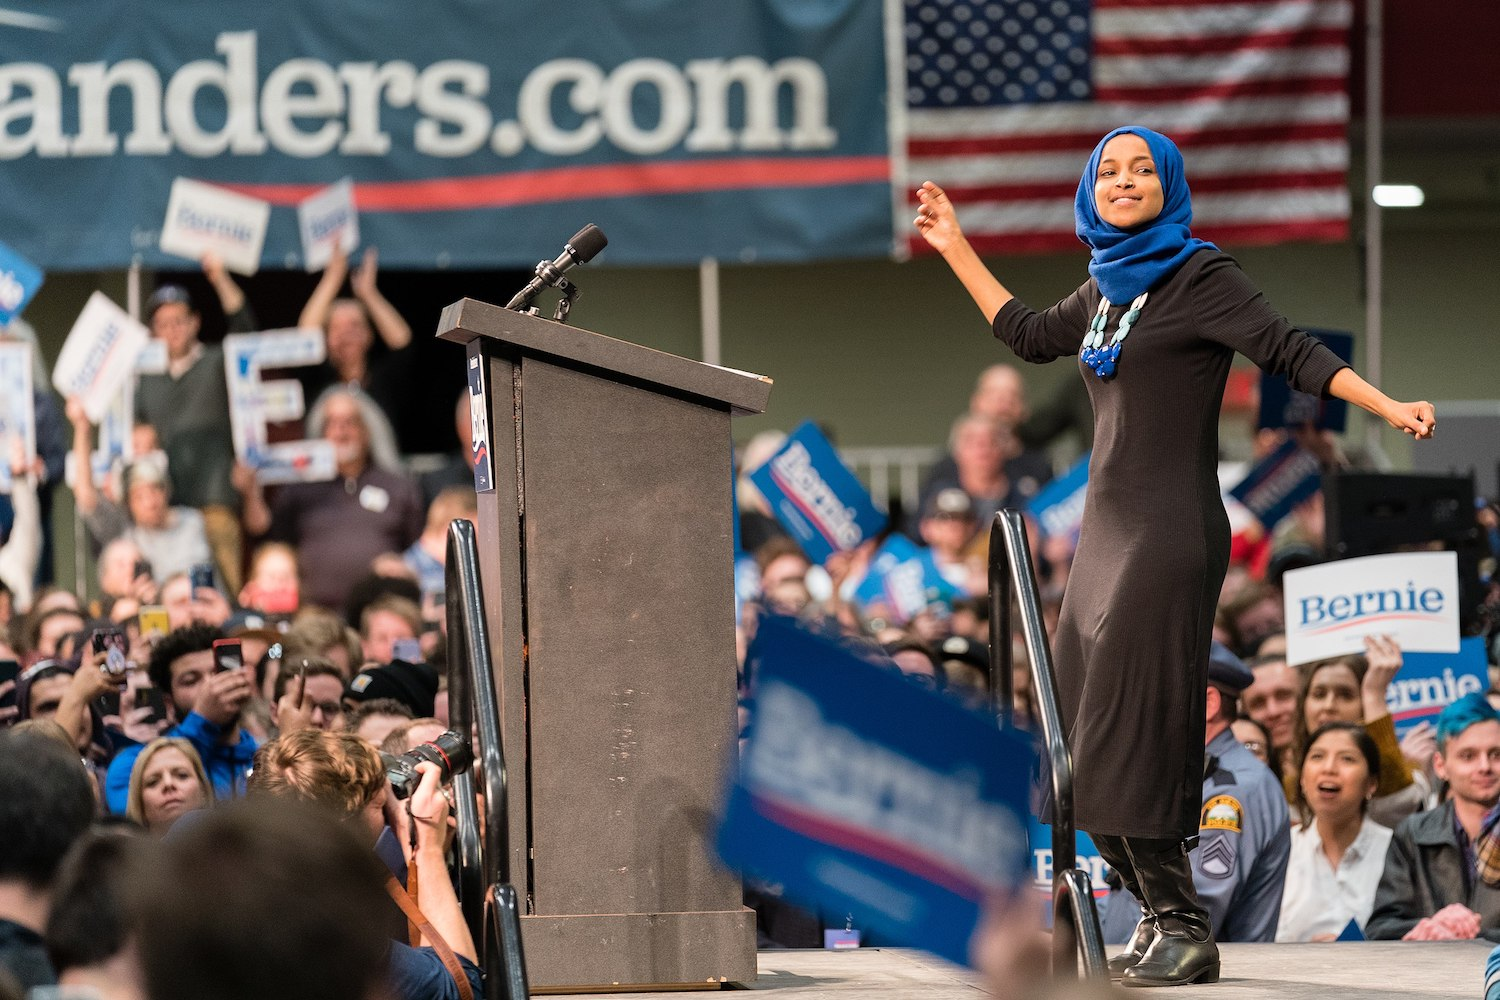 Rep. Ilhan Omar dances on stage at a Bernie Sanders rally in St. Paul, Minnesota, March 2, 2020. (Lorie Shaull/CC BY-SA 2.0)